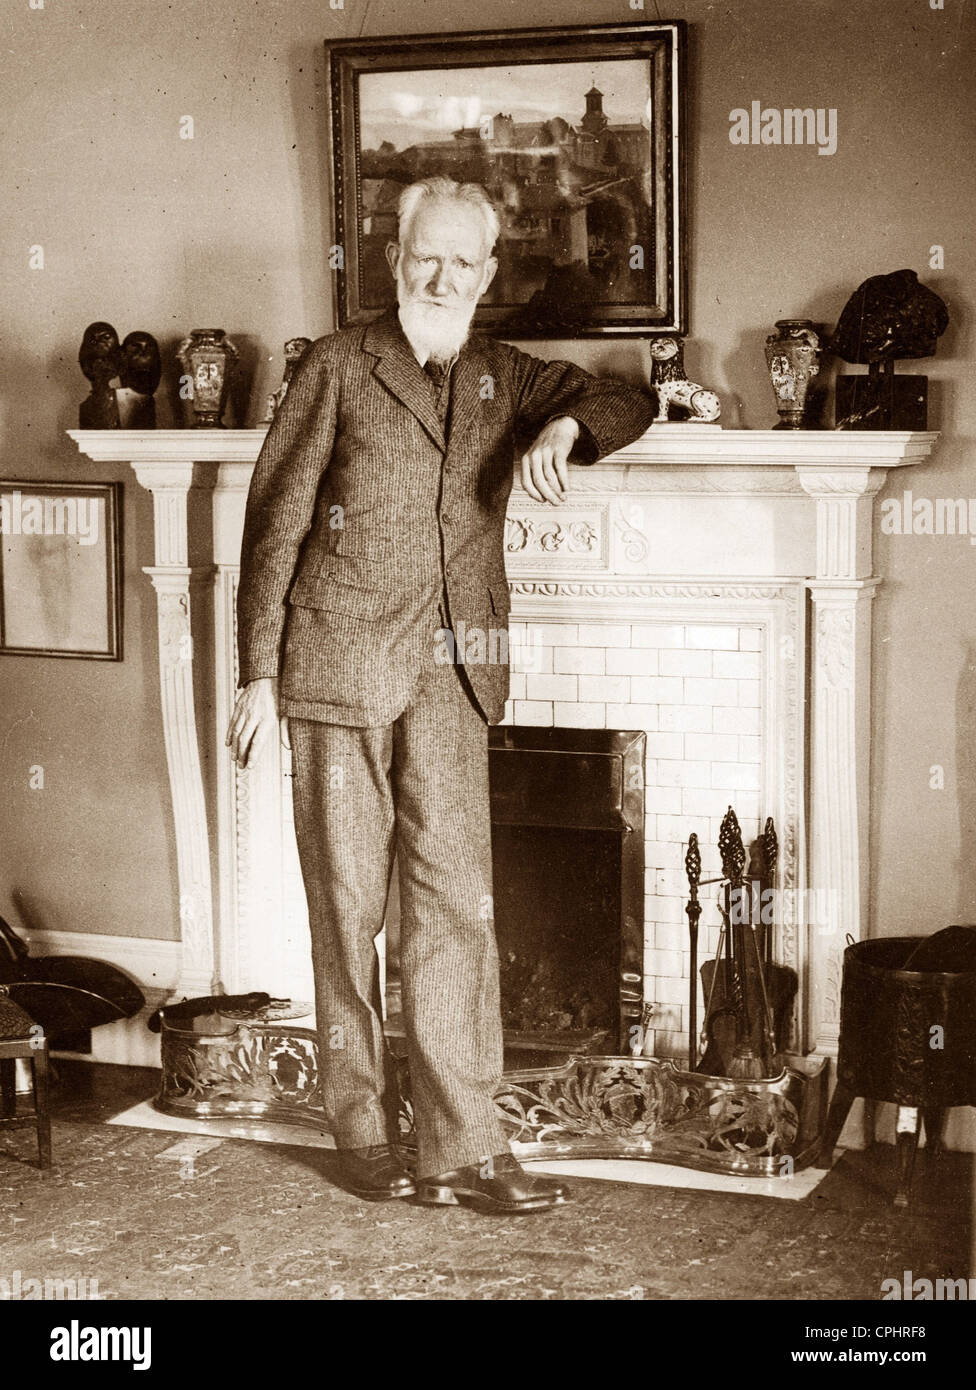 George Bernard Shaw (1856-1950) Irish playwright, music & literary critic. In 1925 Shaw was awarded Nobel Prize - Stock Image